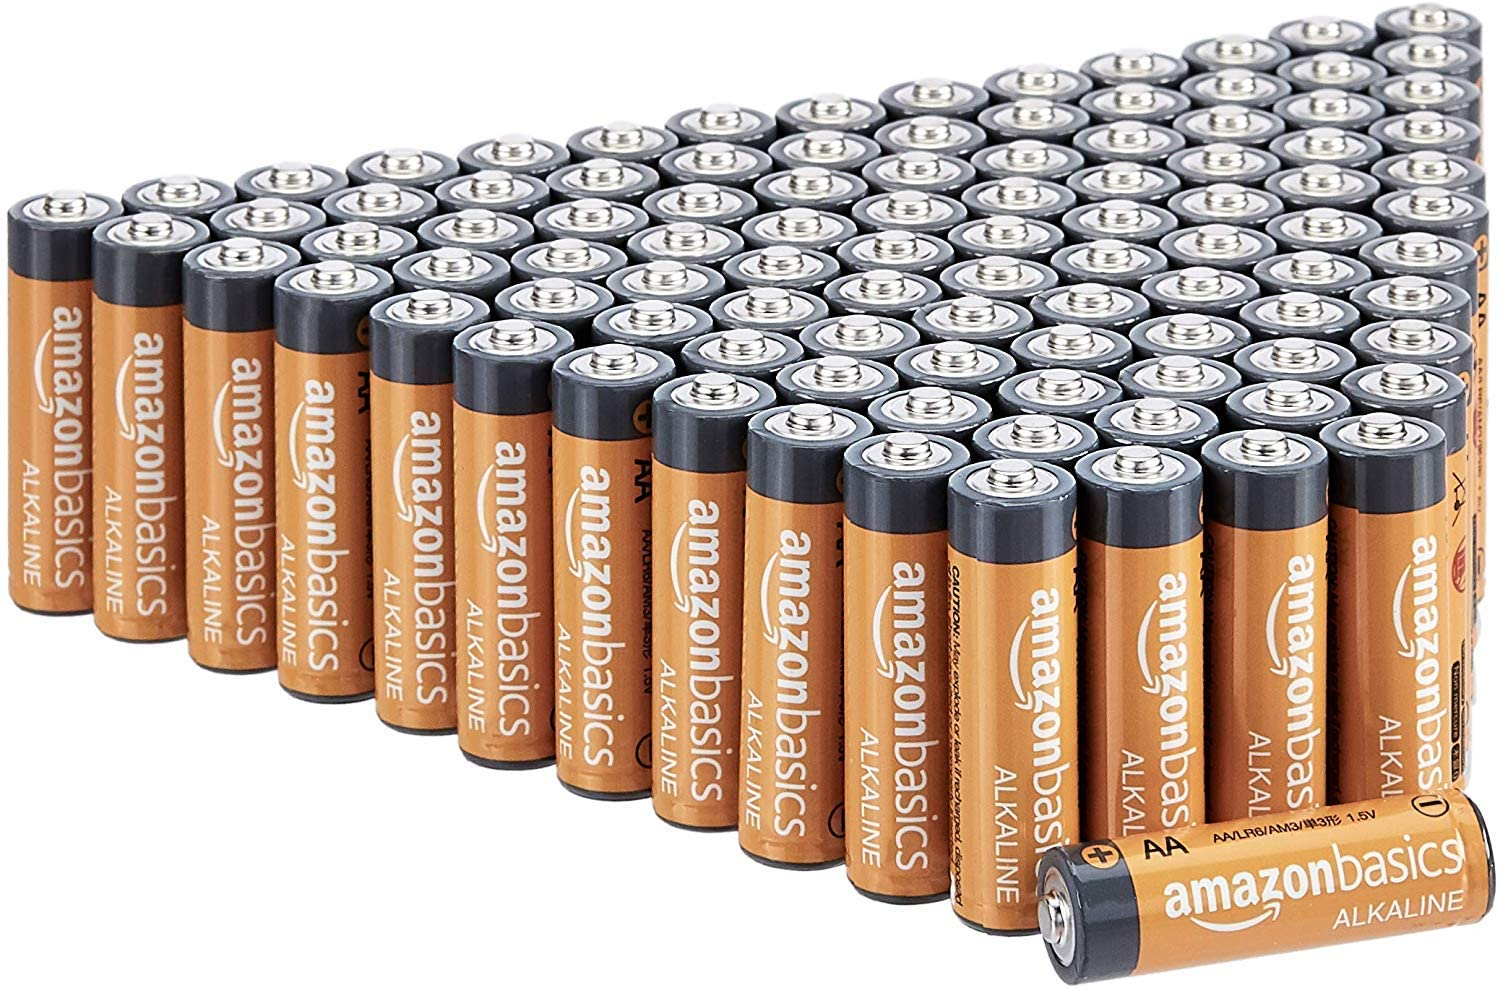 Basics 100 Pack AA High-Performance Alkaline Batteries, 10-Year Shelf Life, Easy to Open Value Pack: Health & Personal Care